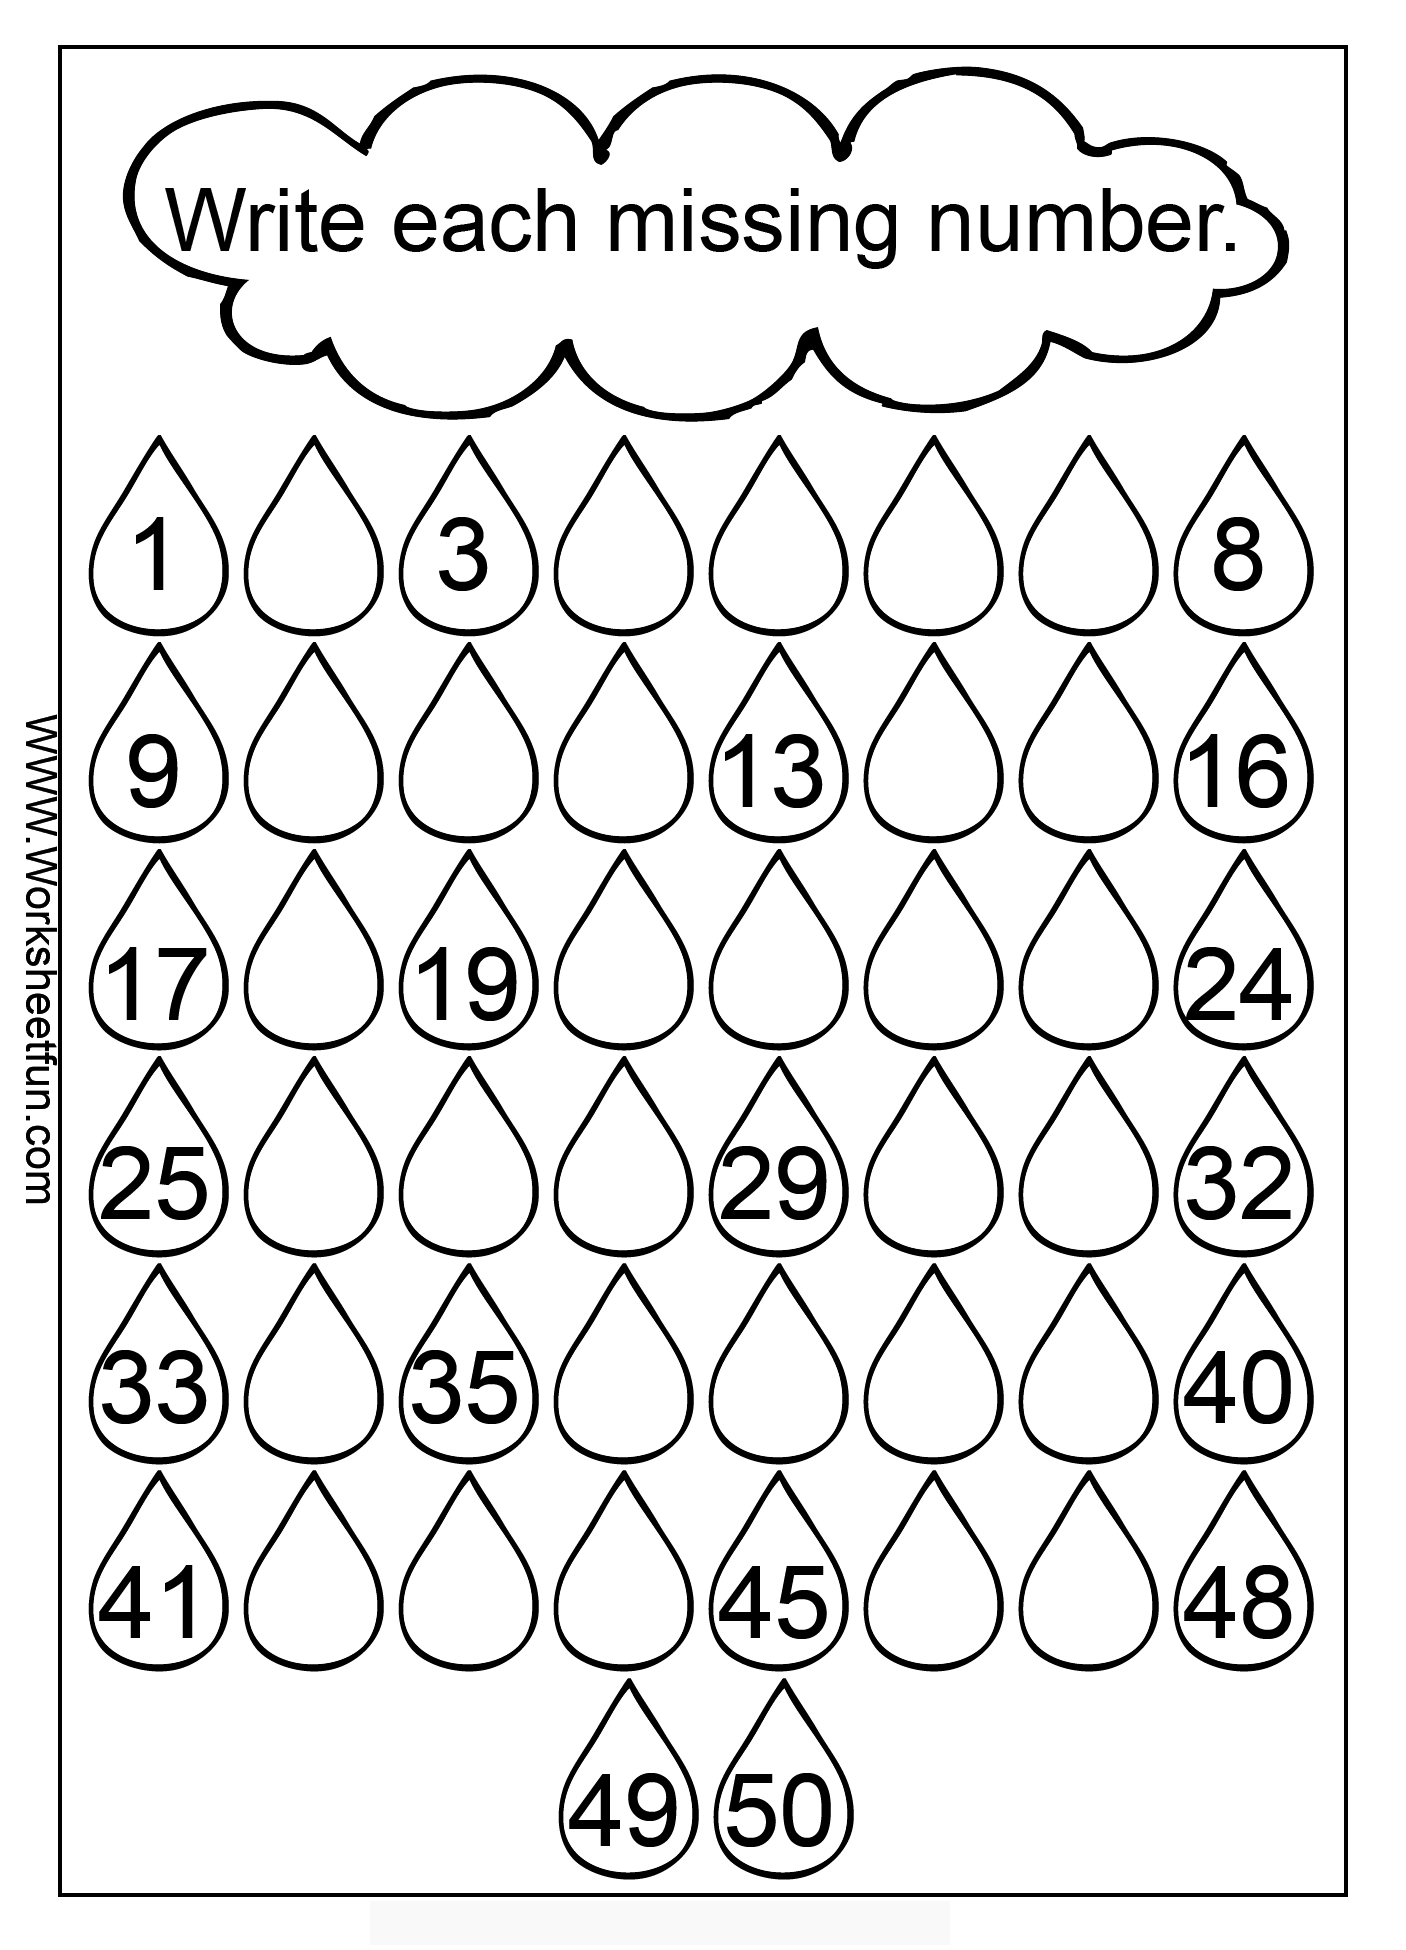 Fill In The Missing Numbers Worksheet School Mathematics